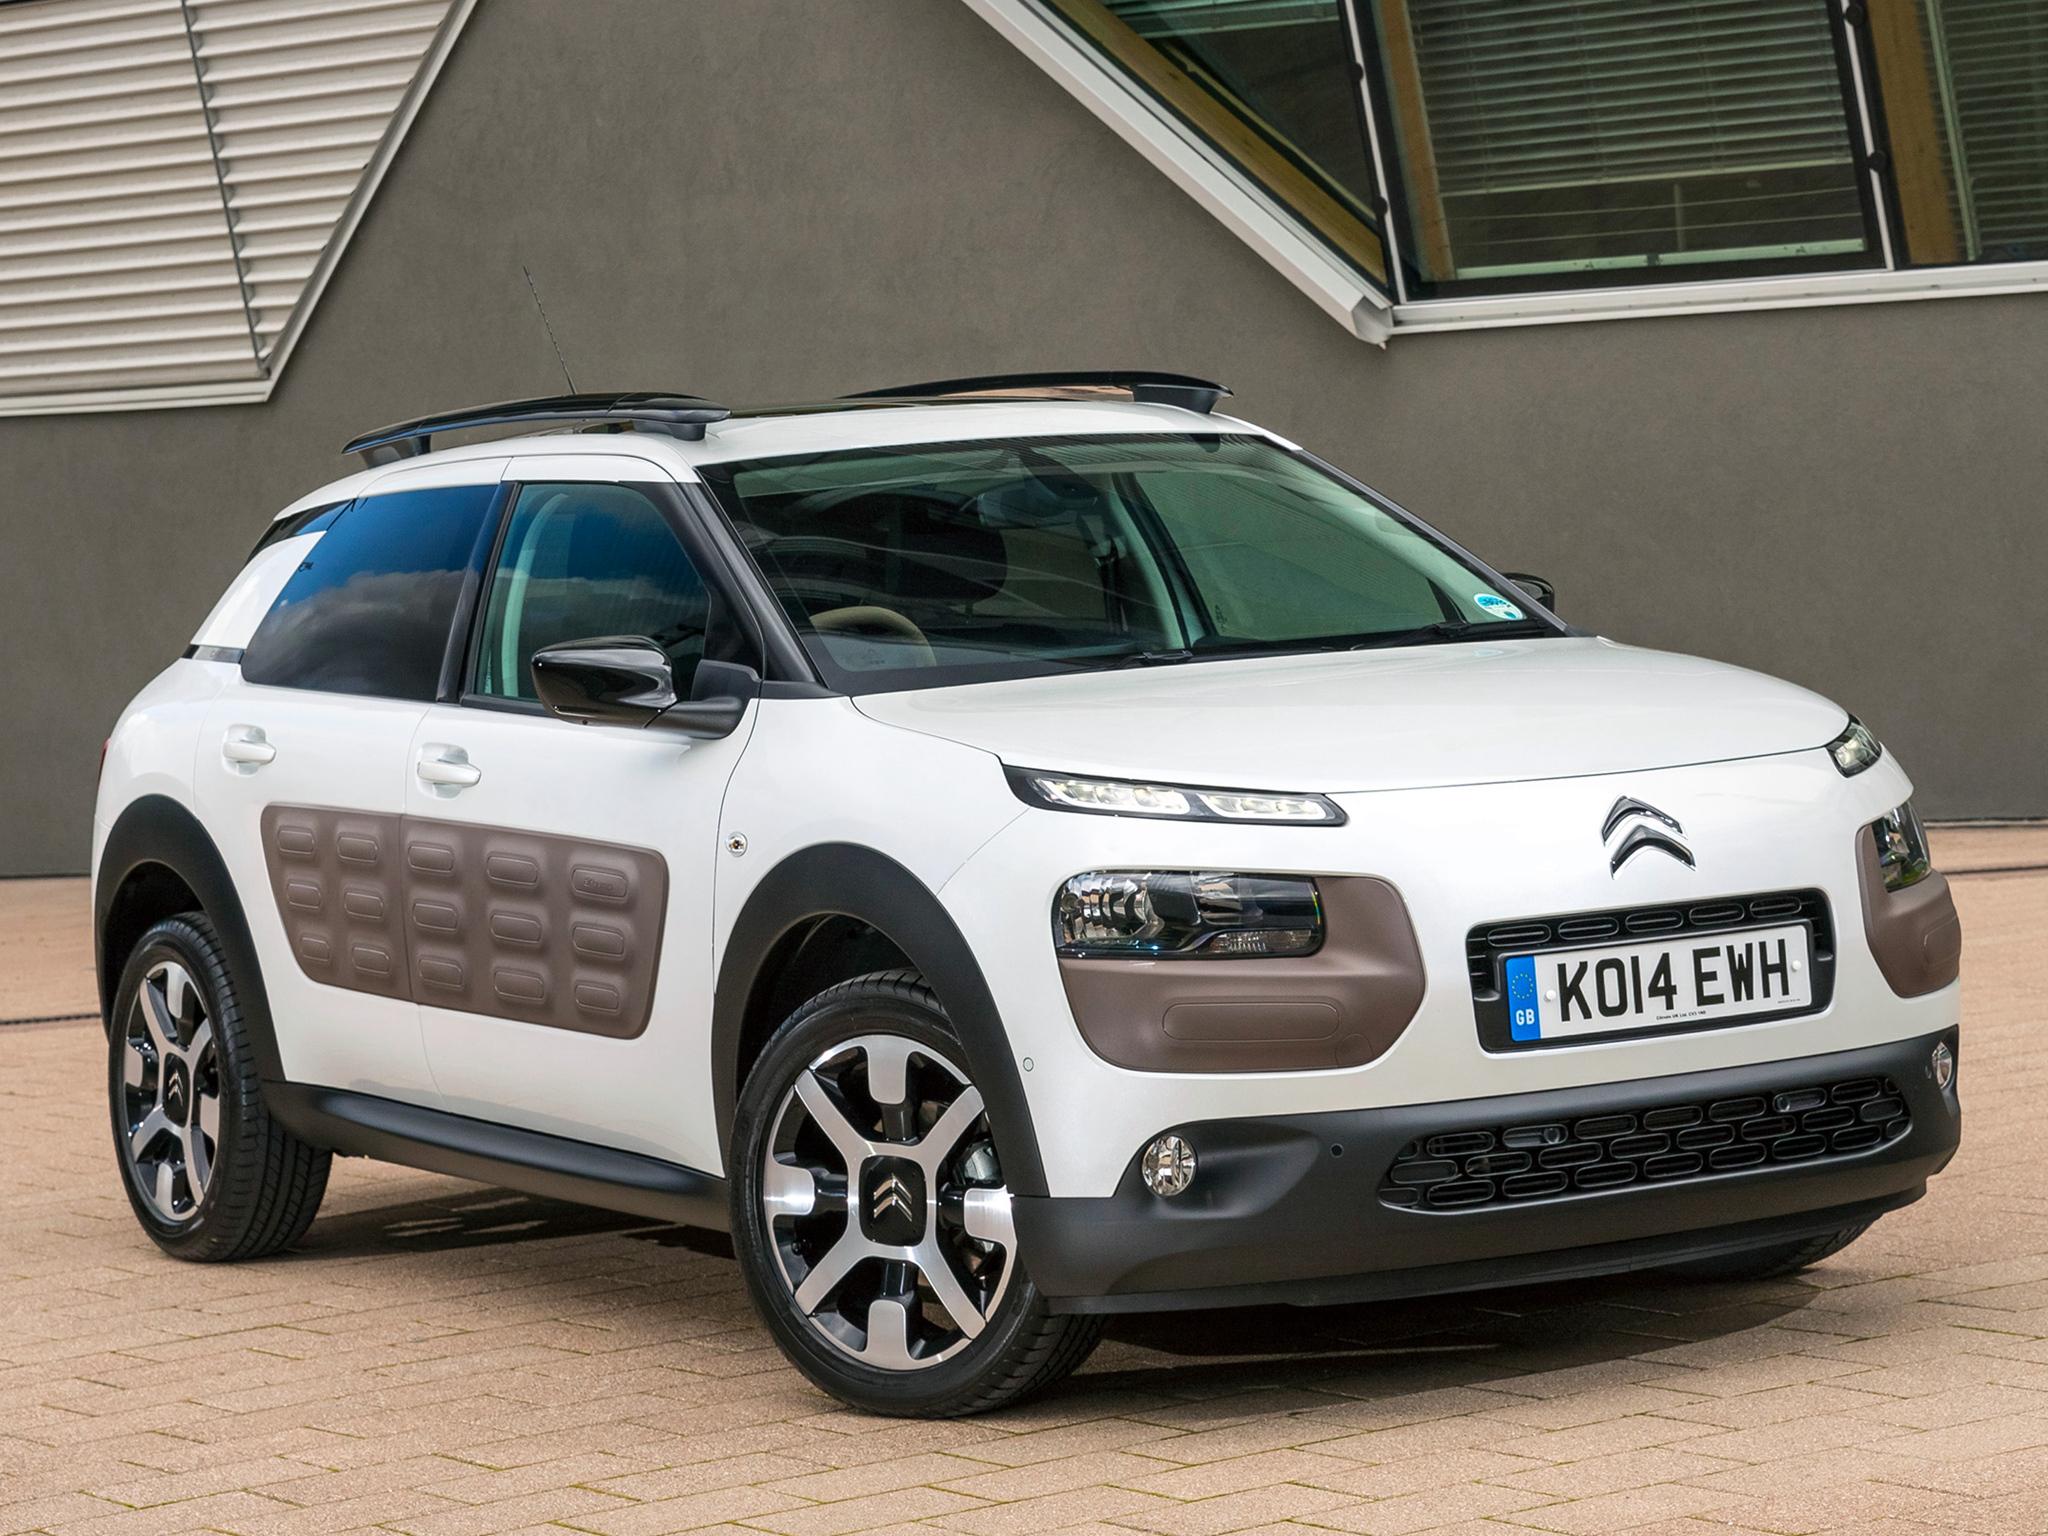 Juke Nissan 2016 >> New Citroen C4 Cactus Launched in Britain: Priced Below Nissan Juke - autoevolution